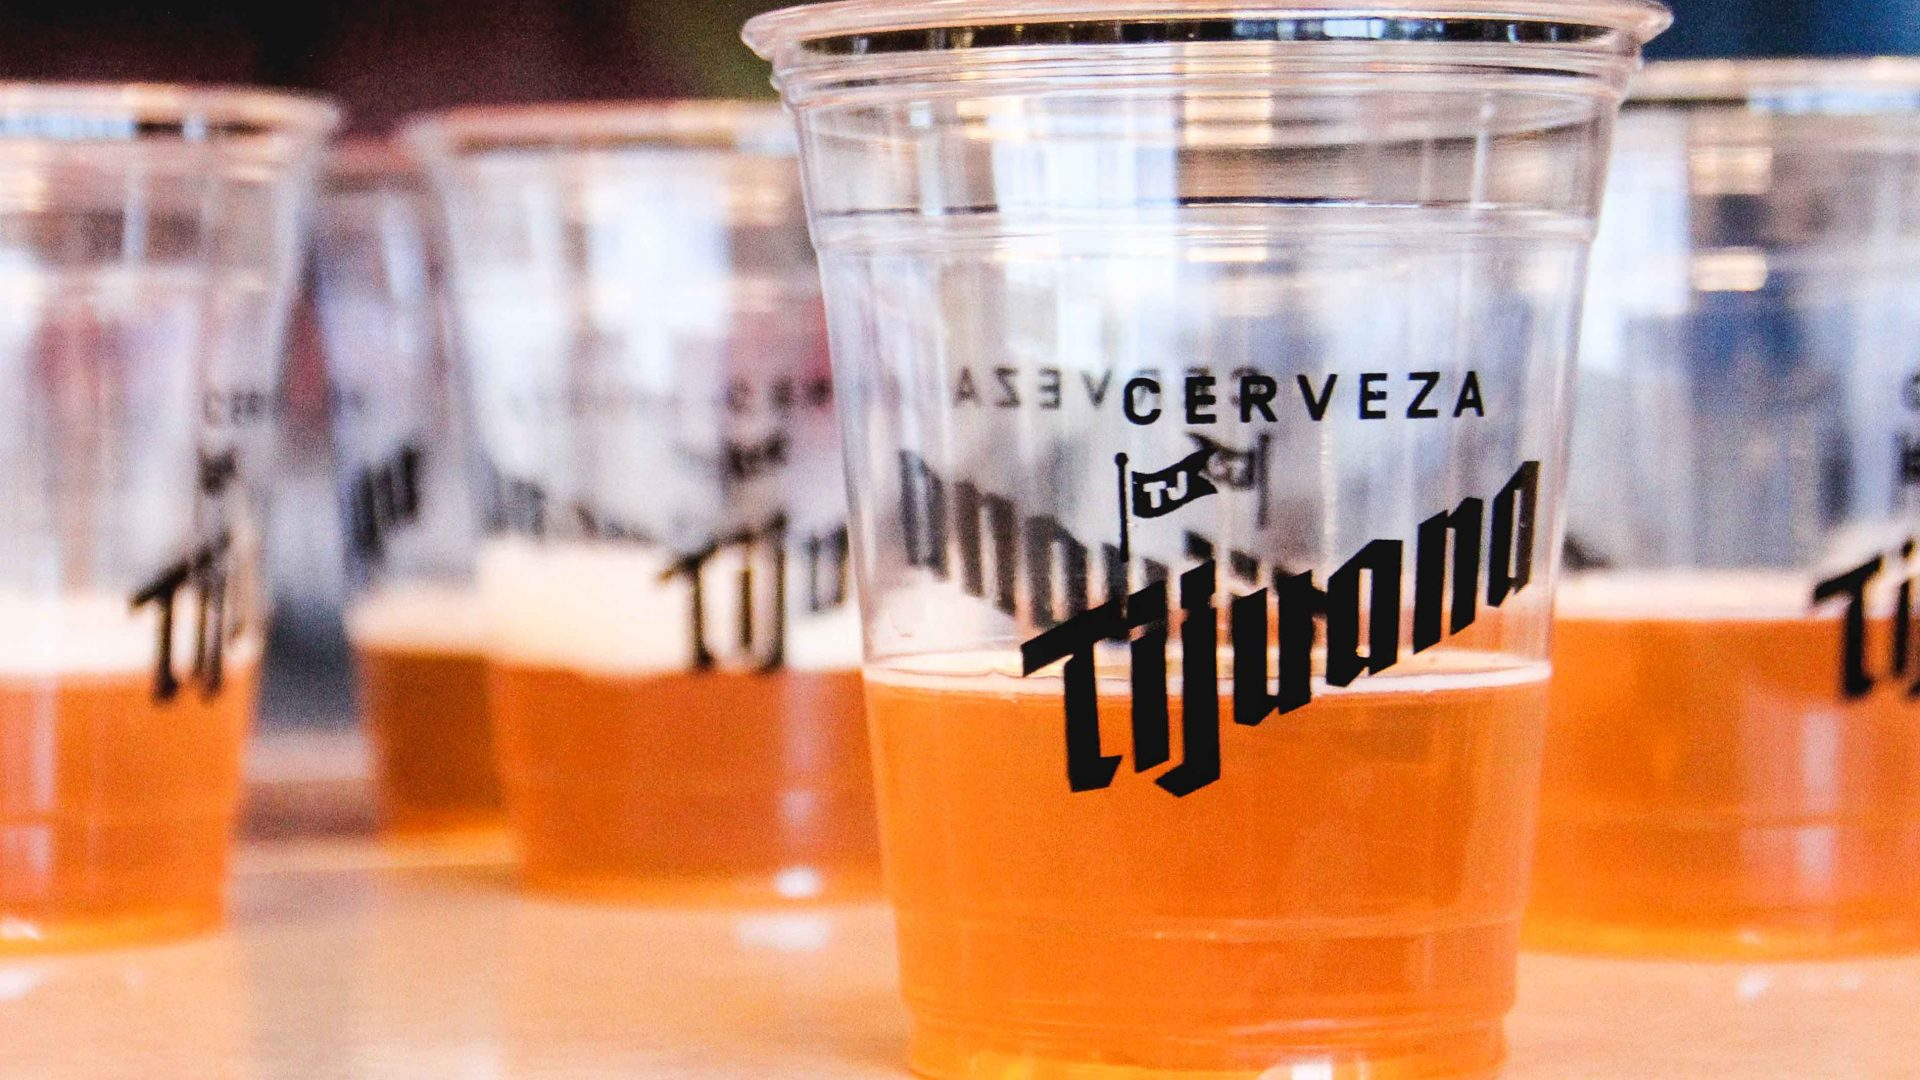 Craft beers are defining Tijuana's local food and drink scene.